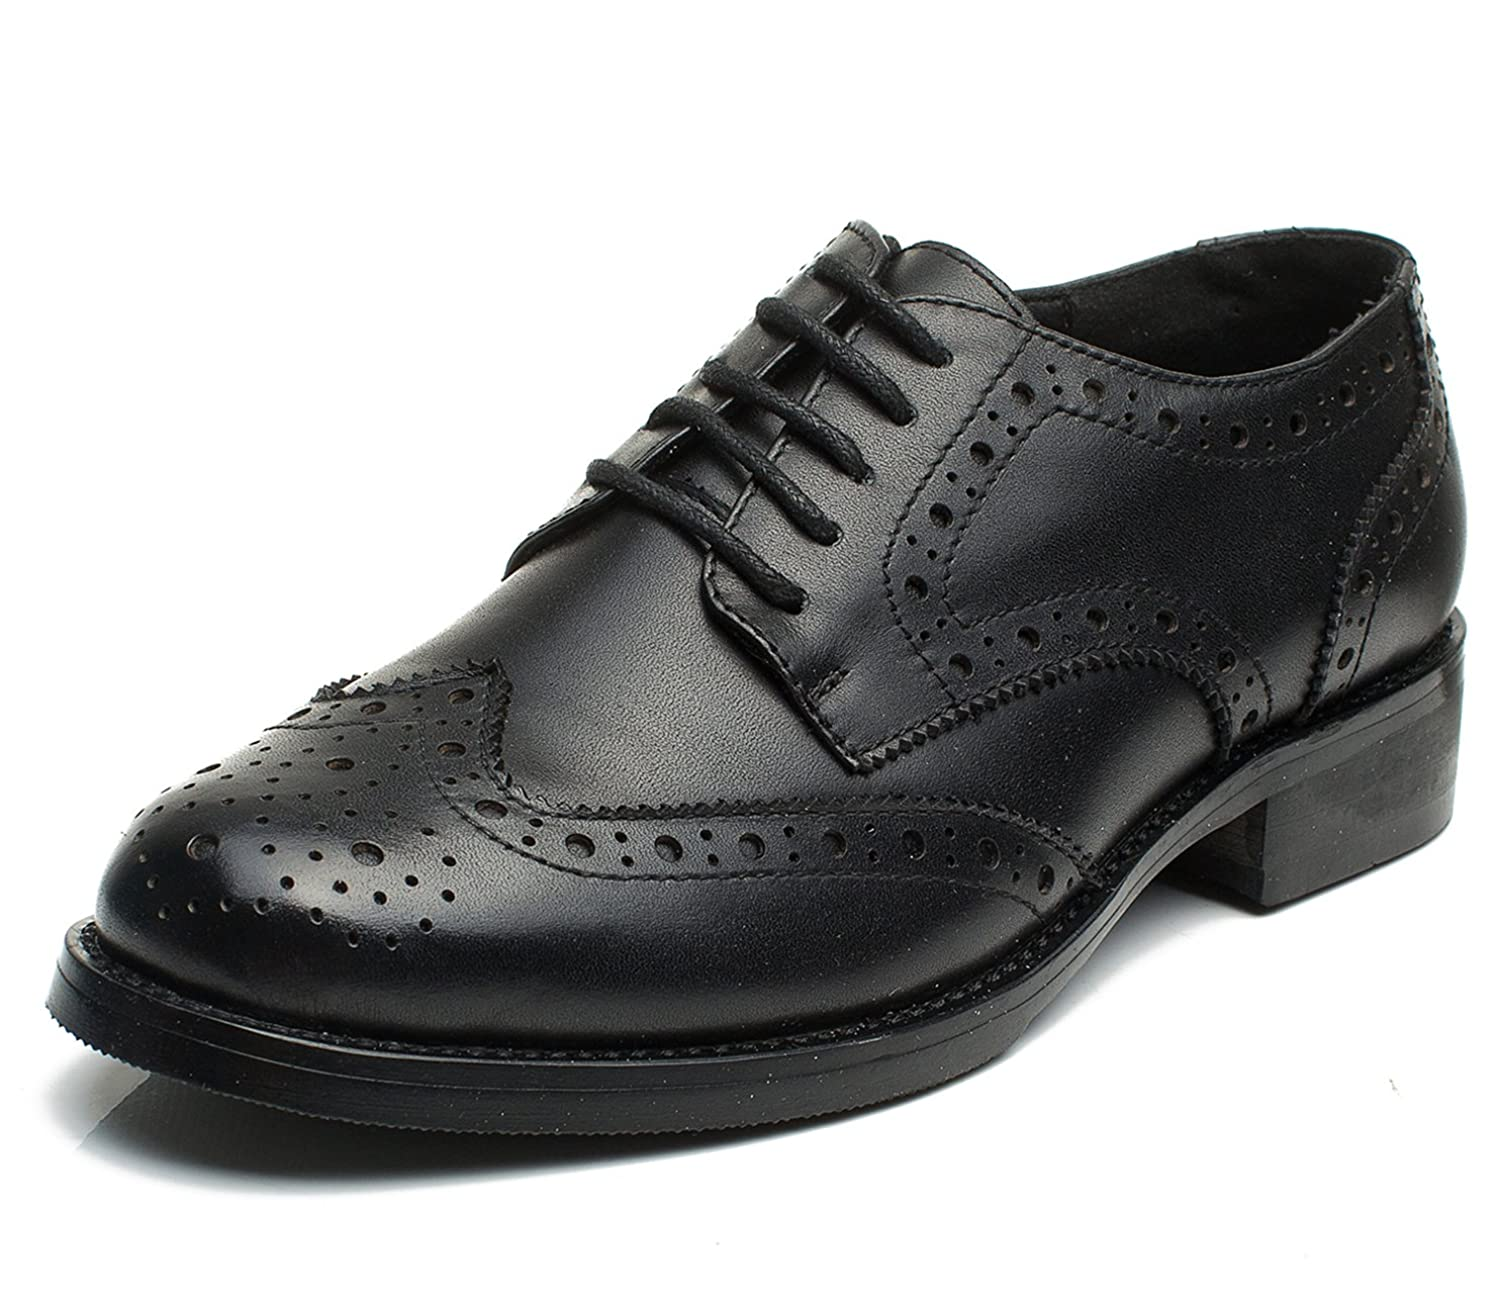 Leather Oxford Brogues Shoe Laces Length